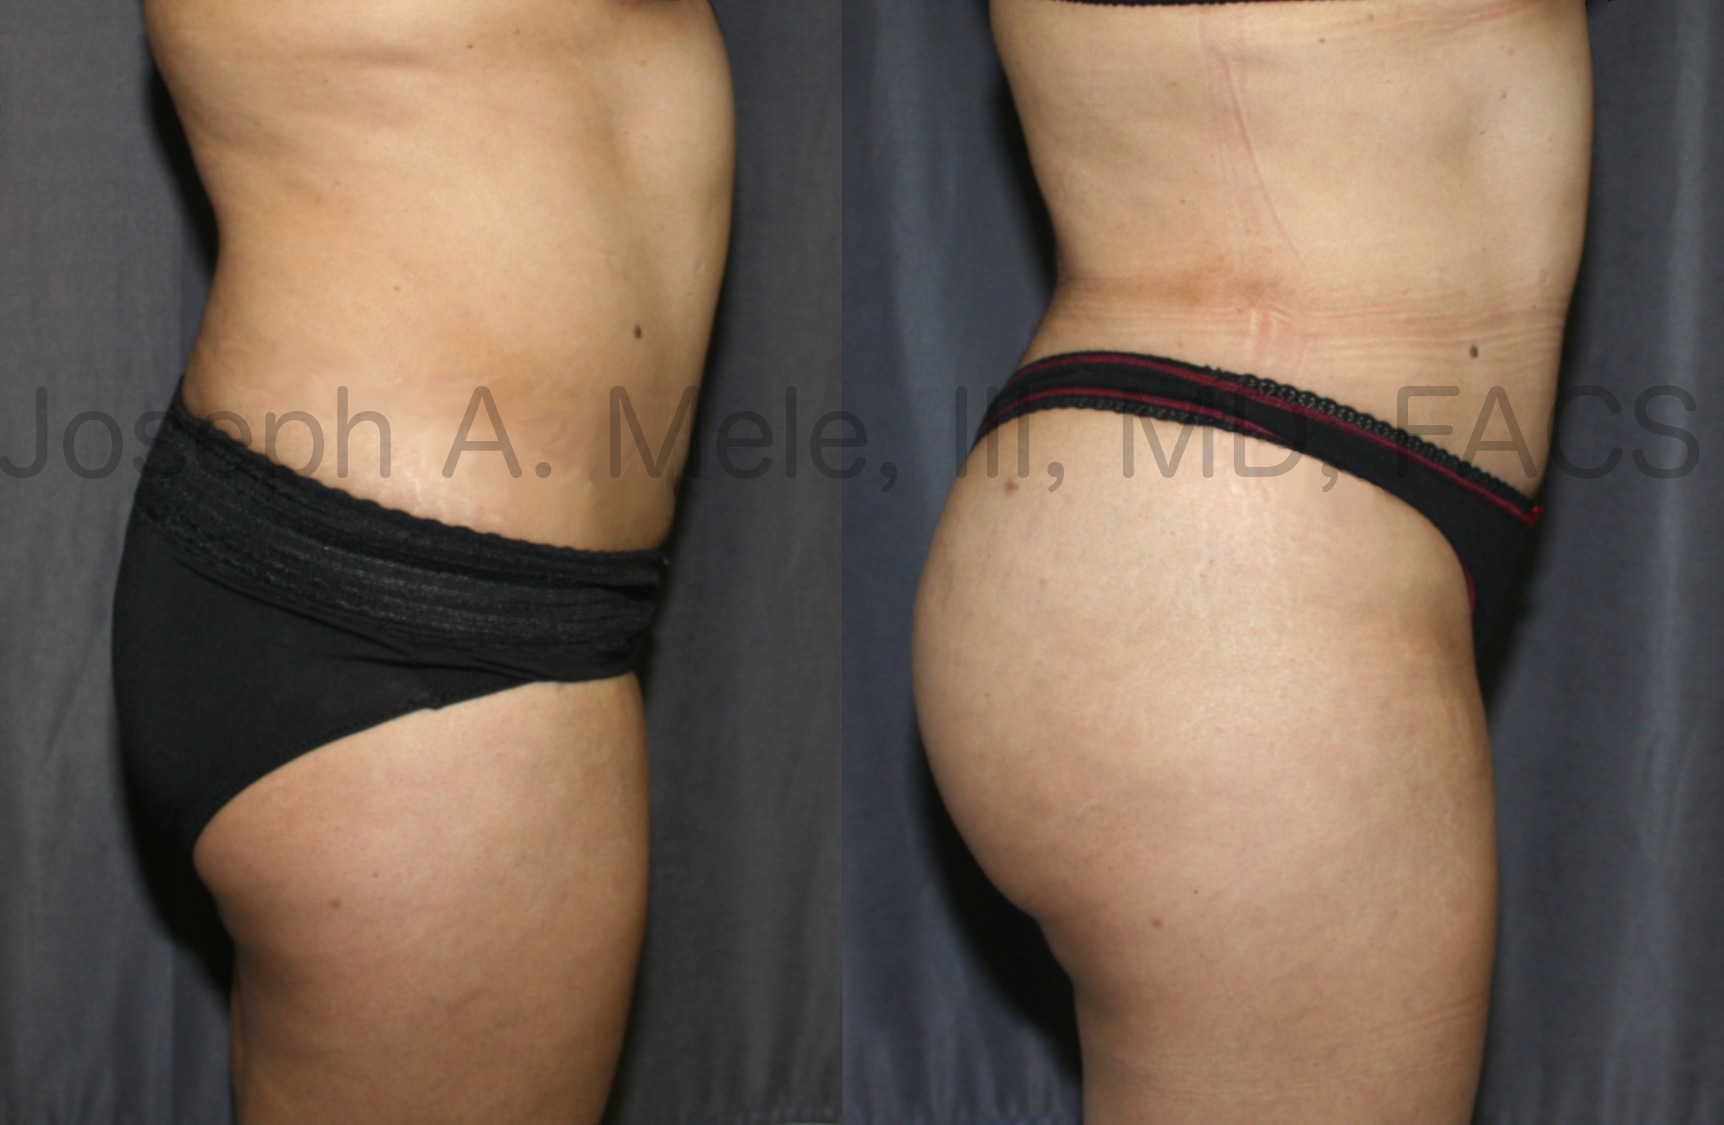 BBL side view - Brazilian Butt Lift before and after pictures